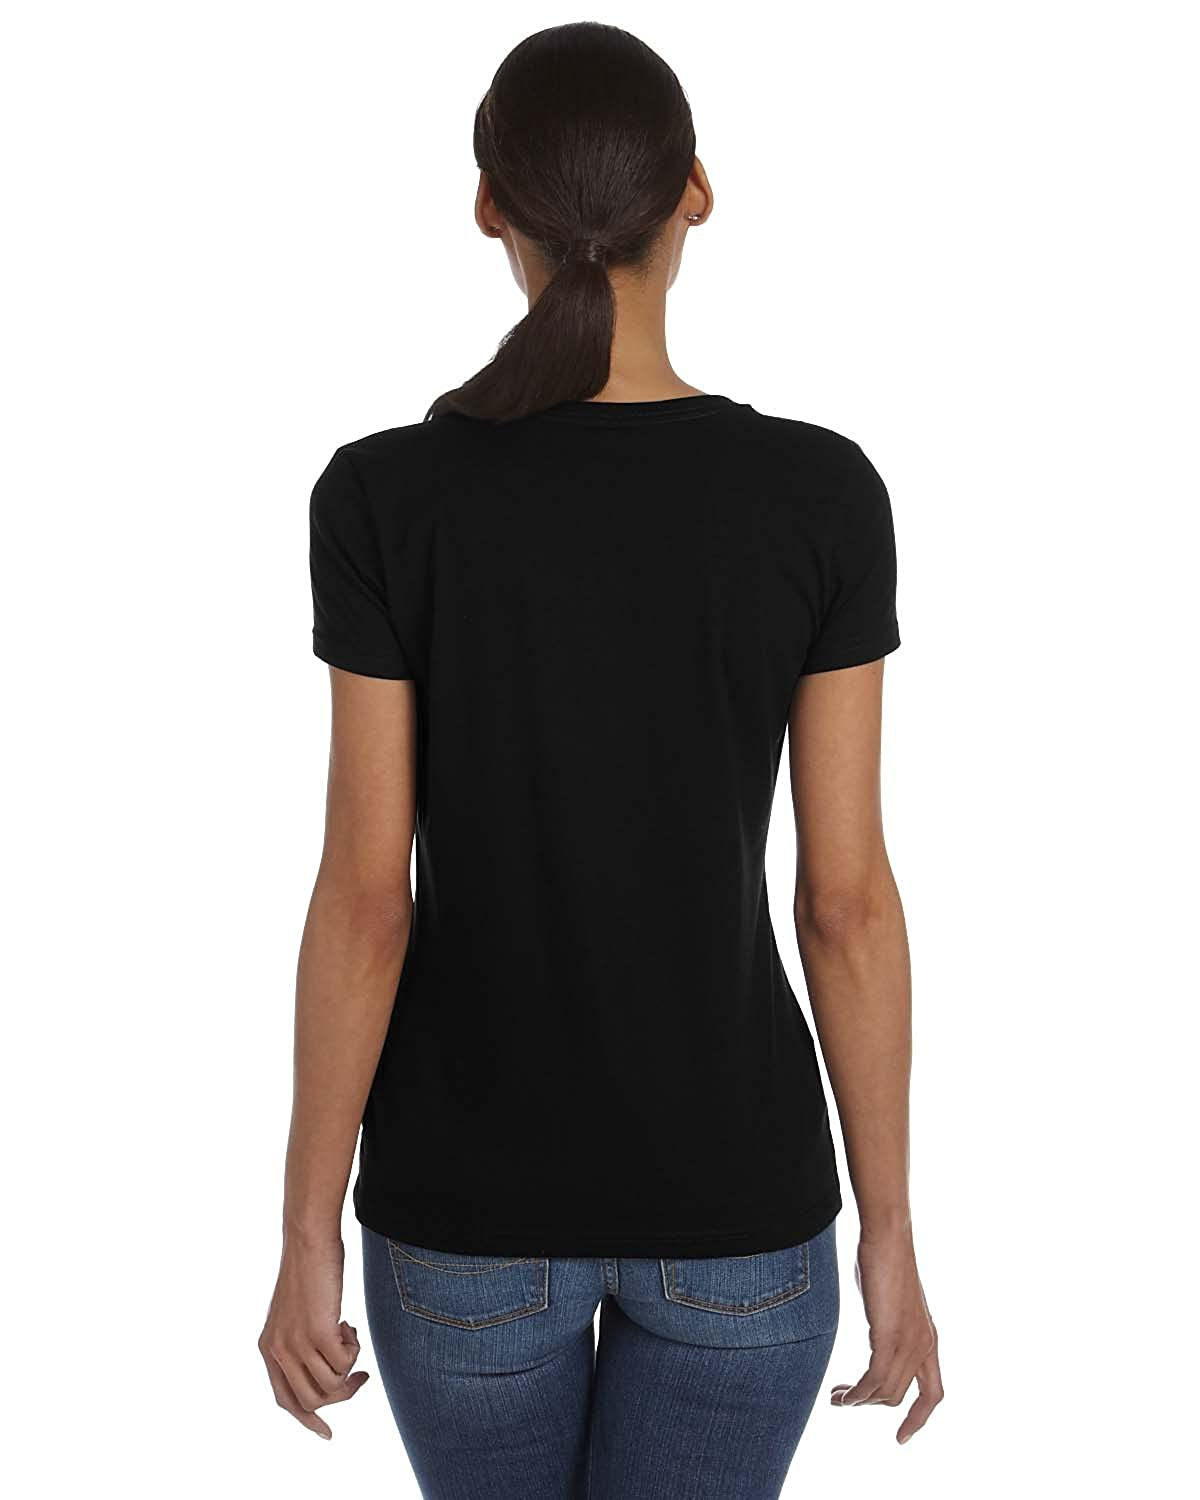 Indica Plateau He Sees Your When Youre Drinking Womens Vneck T-Shirt